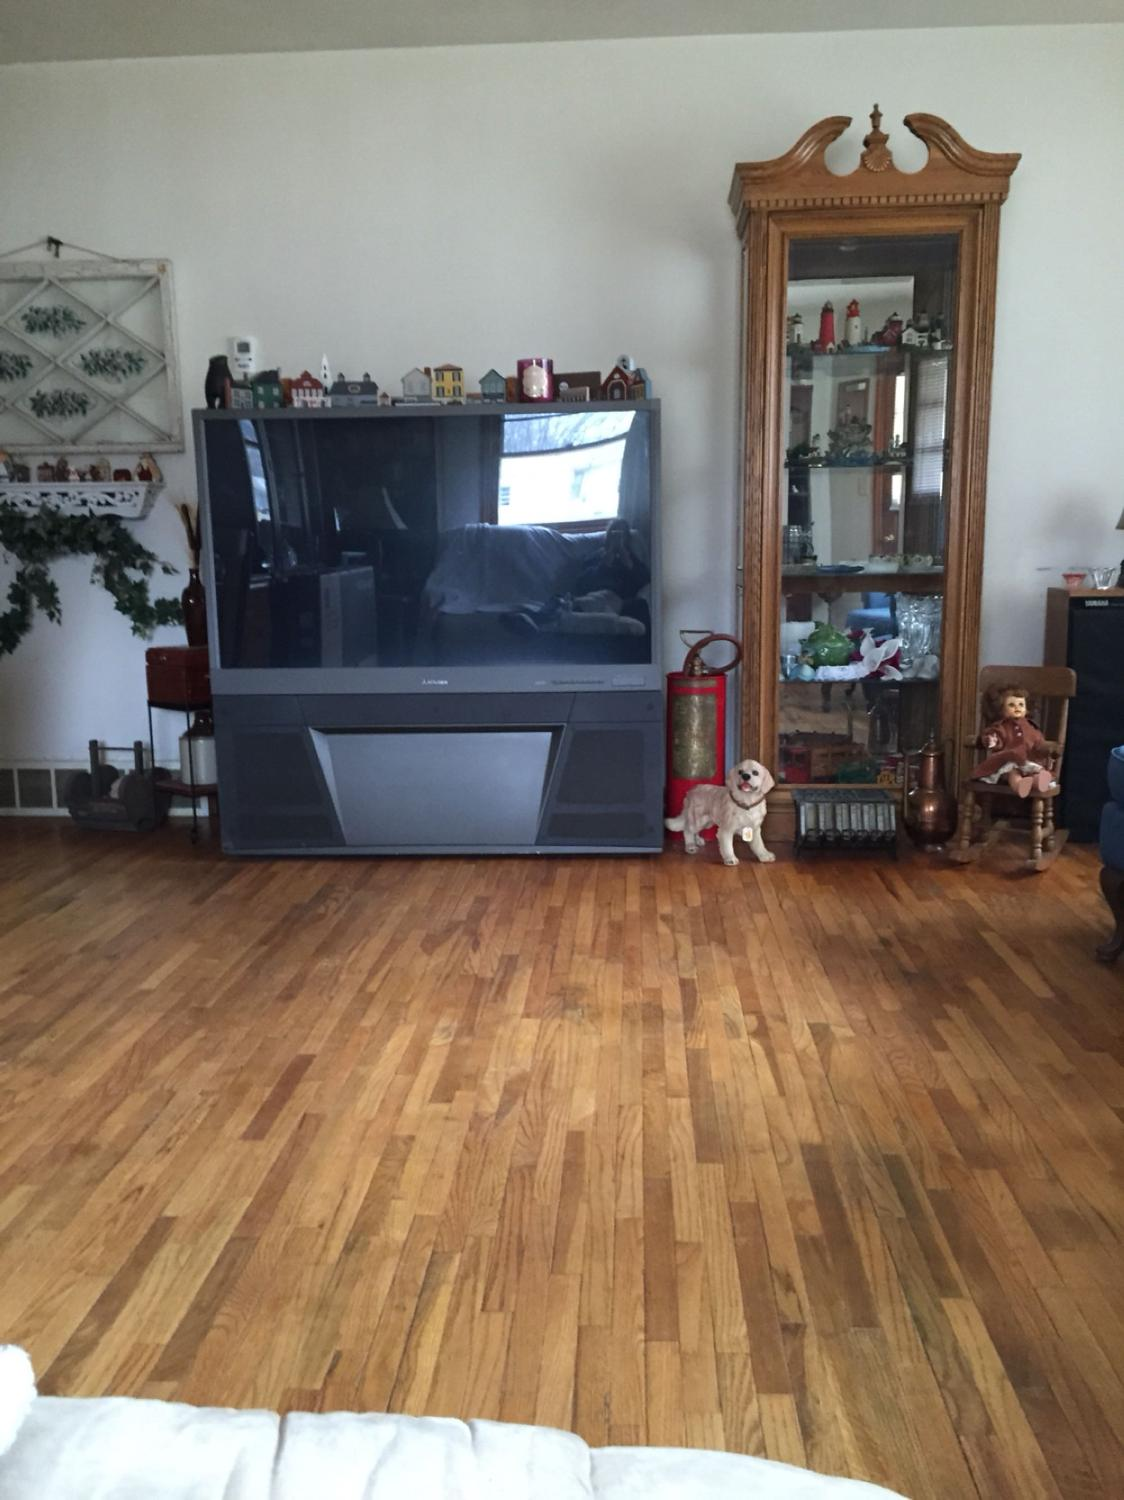 Find More 55 Inch Mitsubishi Tv It Works Great We Got A New Tv For